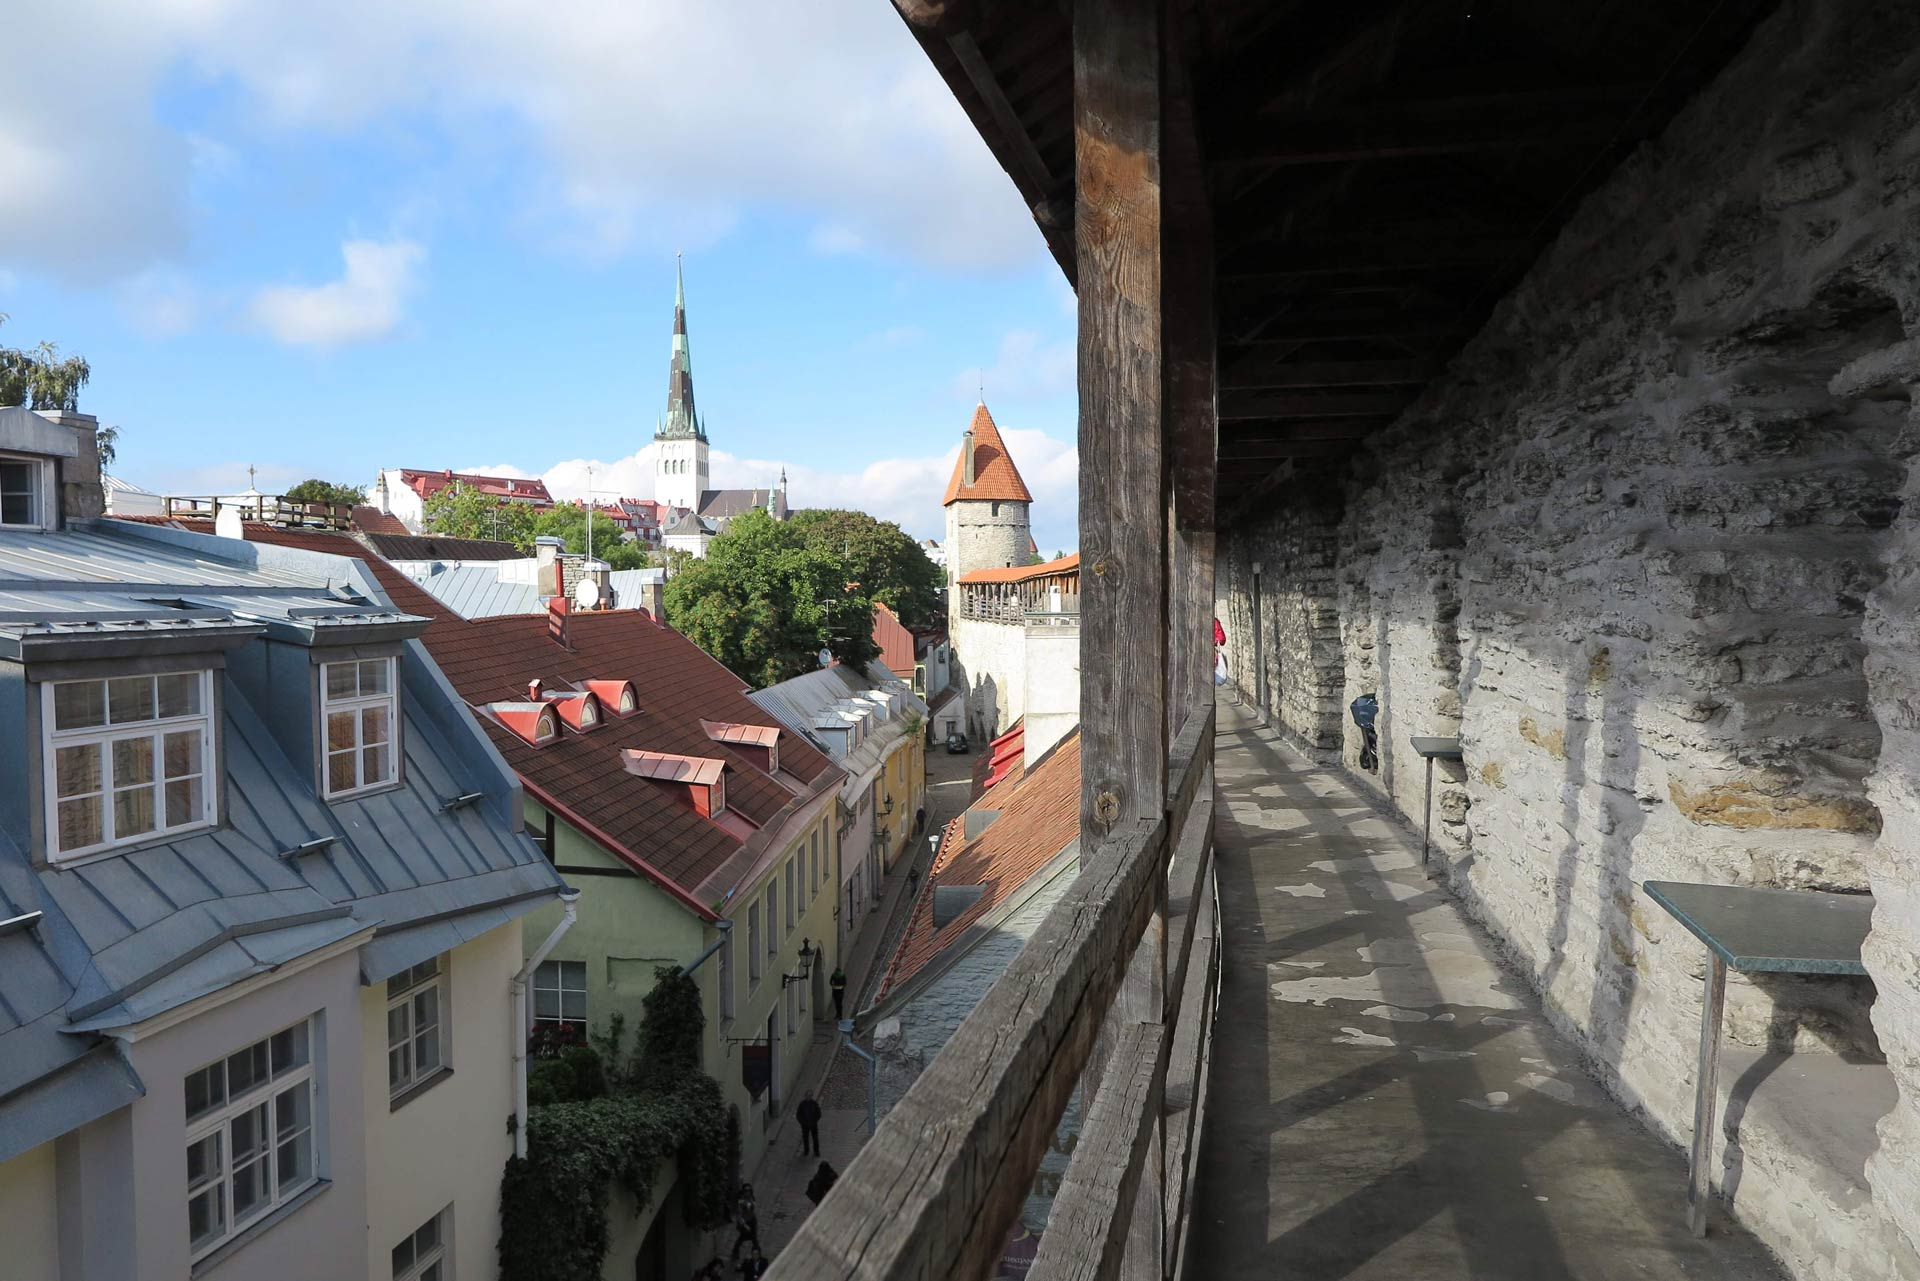 View from the wall in Old Town of Tallinn